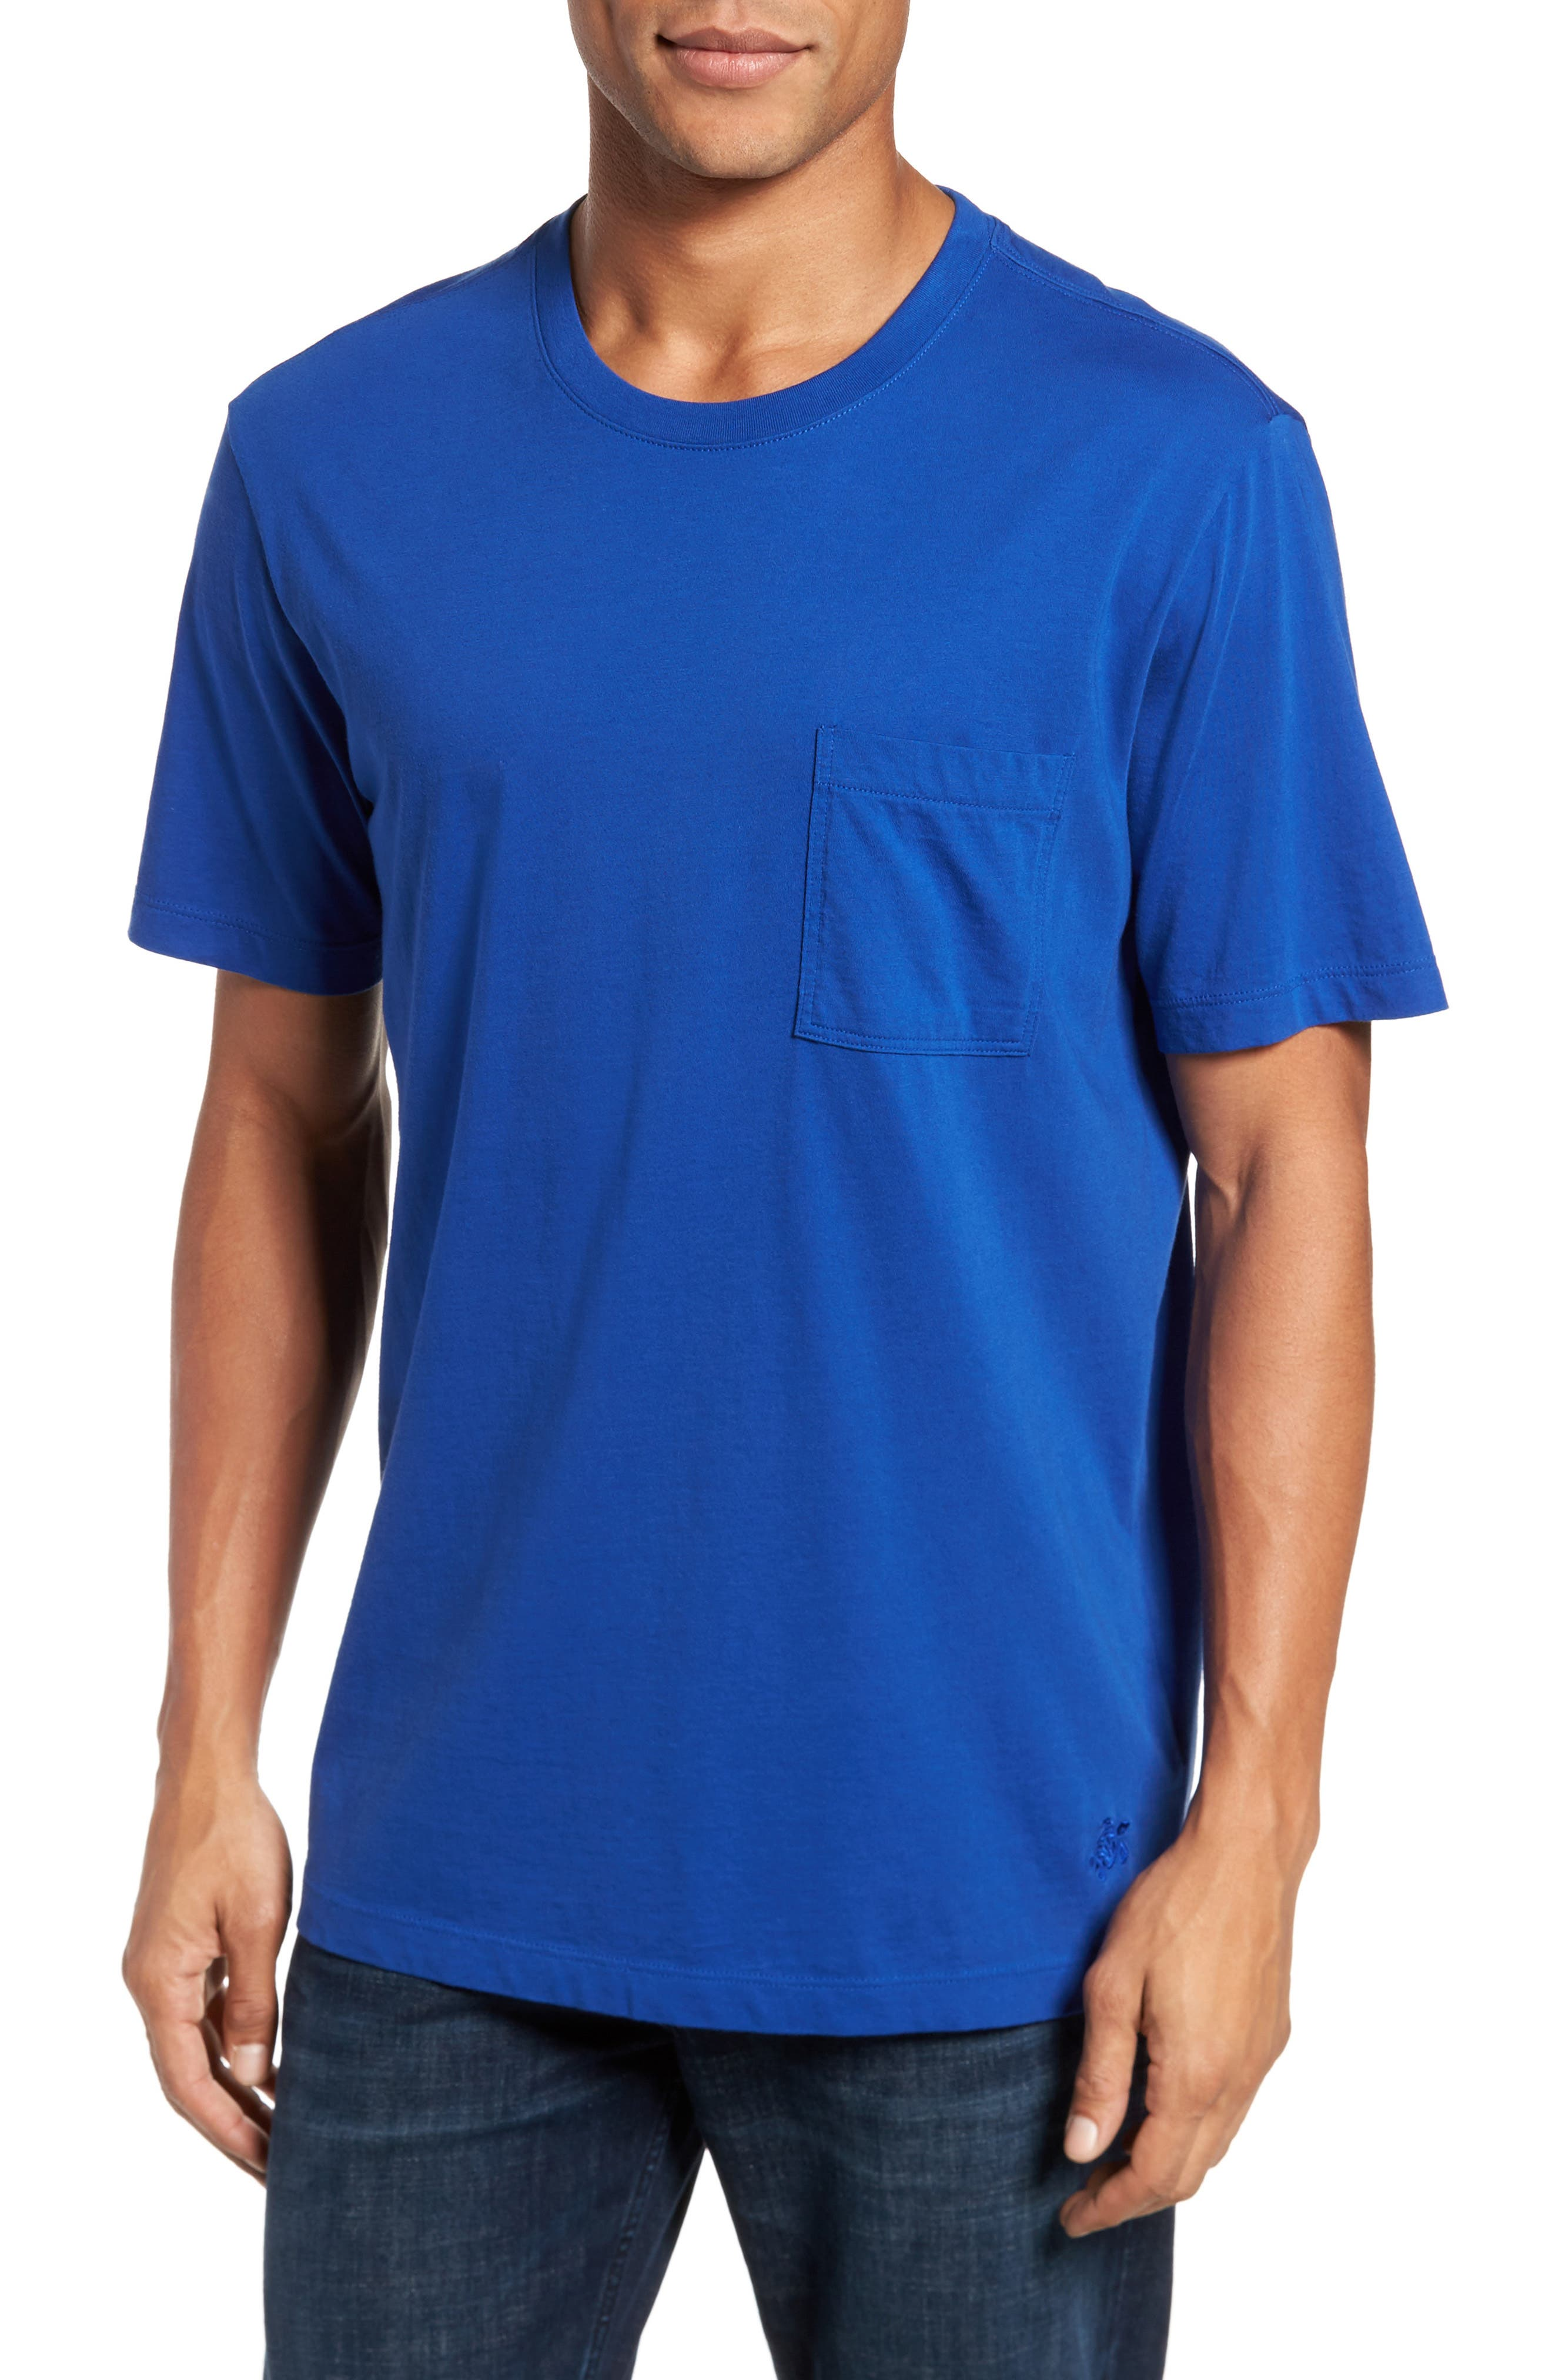 Main Image - Vilebrequin Classic Fit Pocket T-Shirt